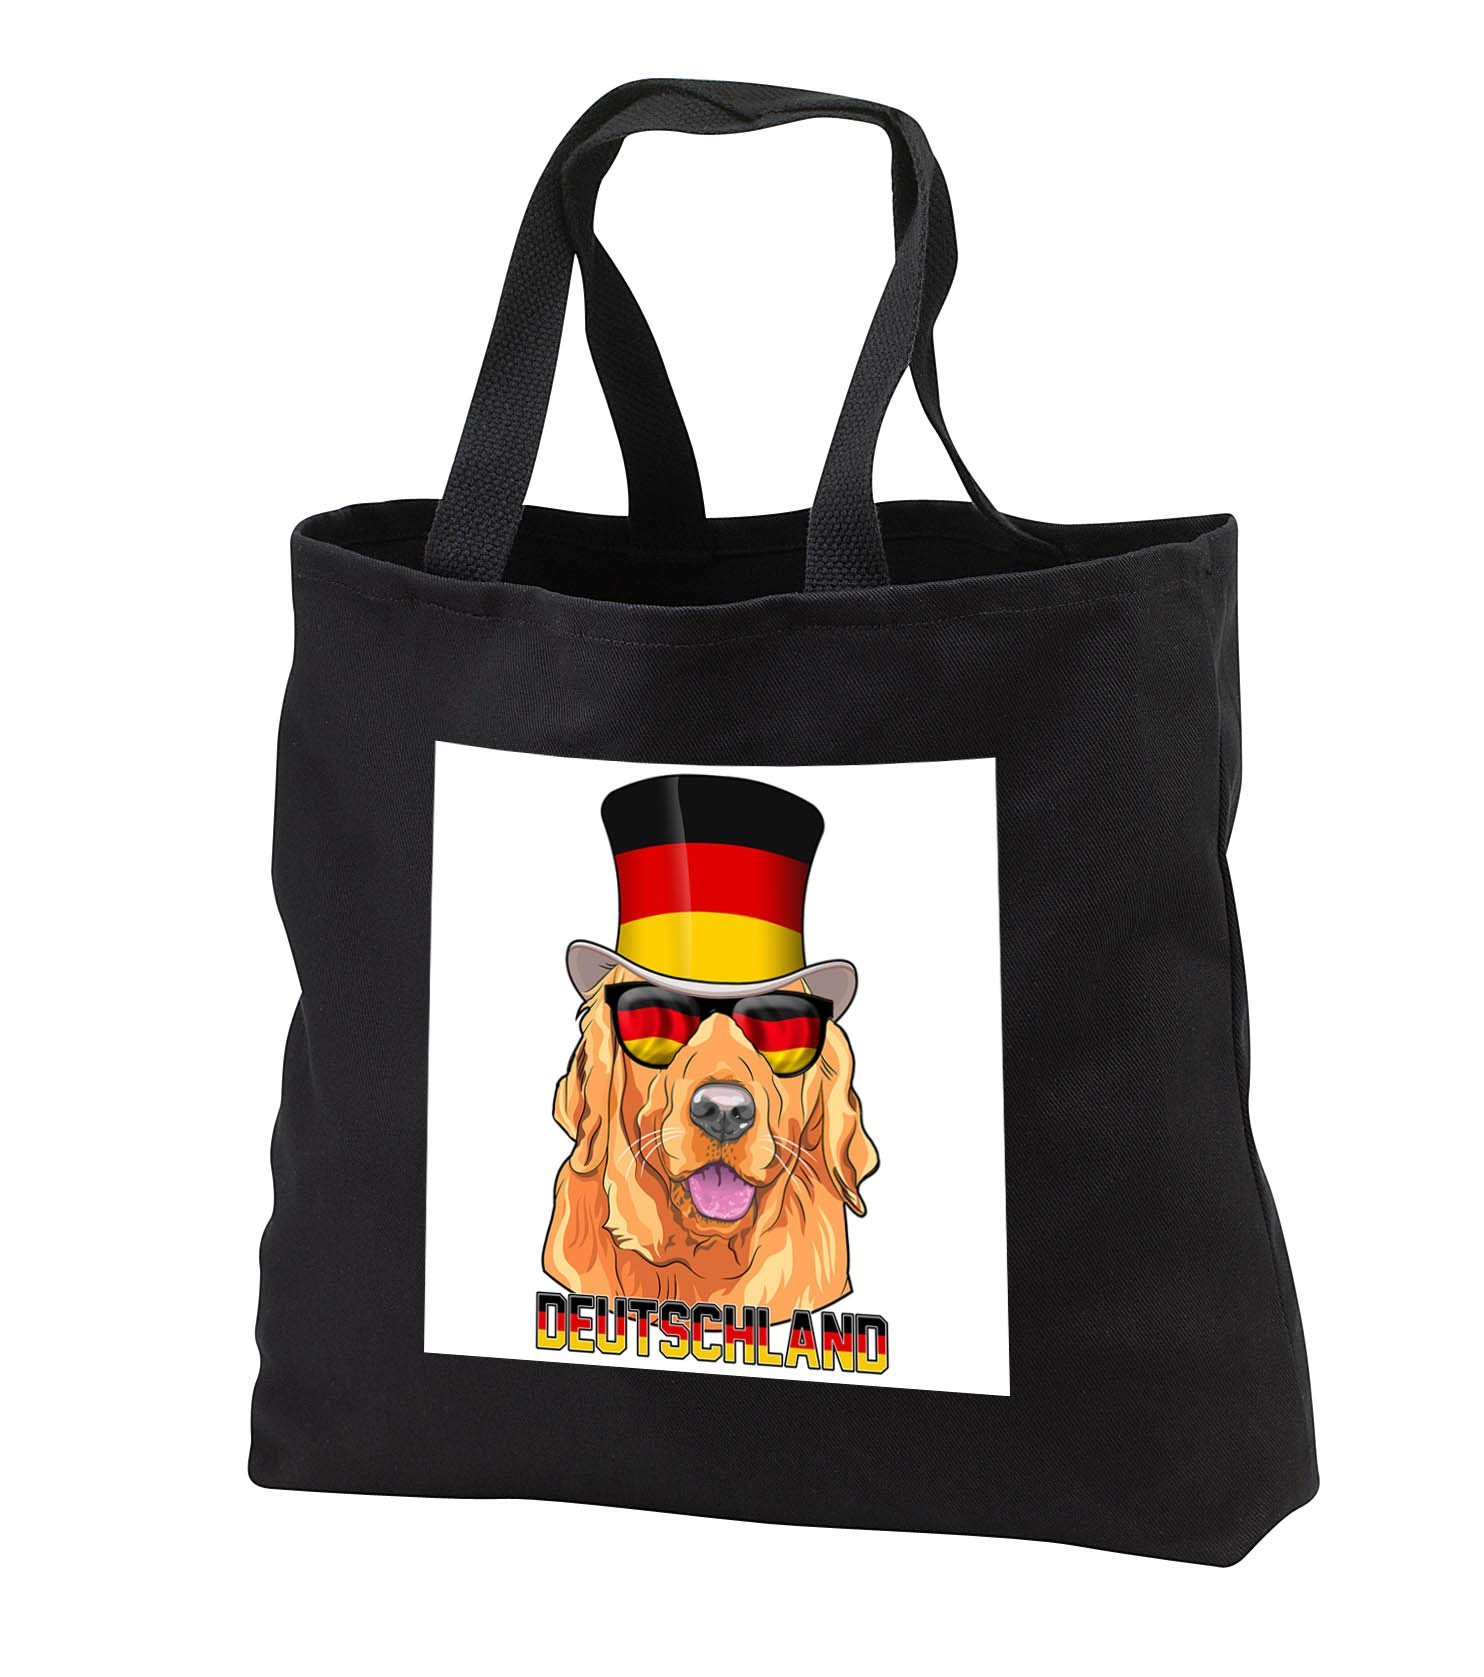 Carsten Reisinger - Illustrations - Germany Golden Retriever Dog with German Flag Top Hat and Sunglasses - Tote Bags - Black Tote Bag 14w x 14h x 3d (tb_293428_1)